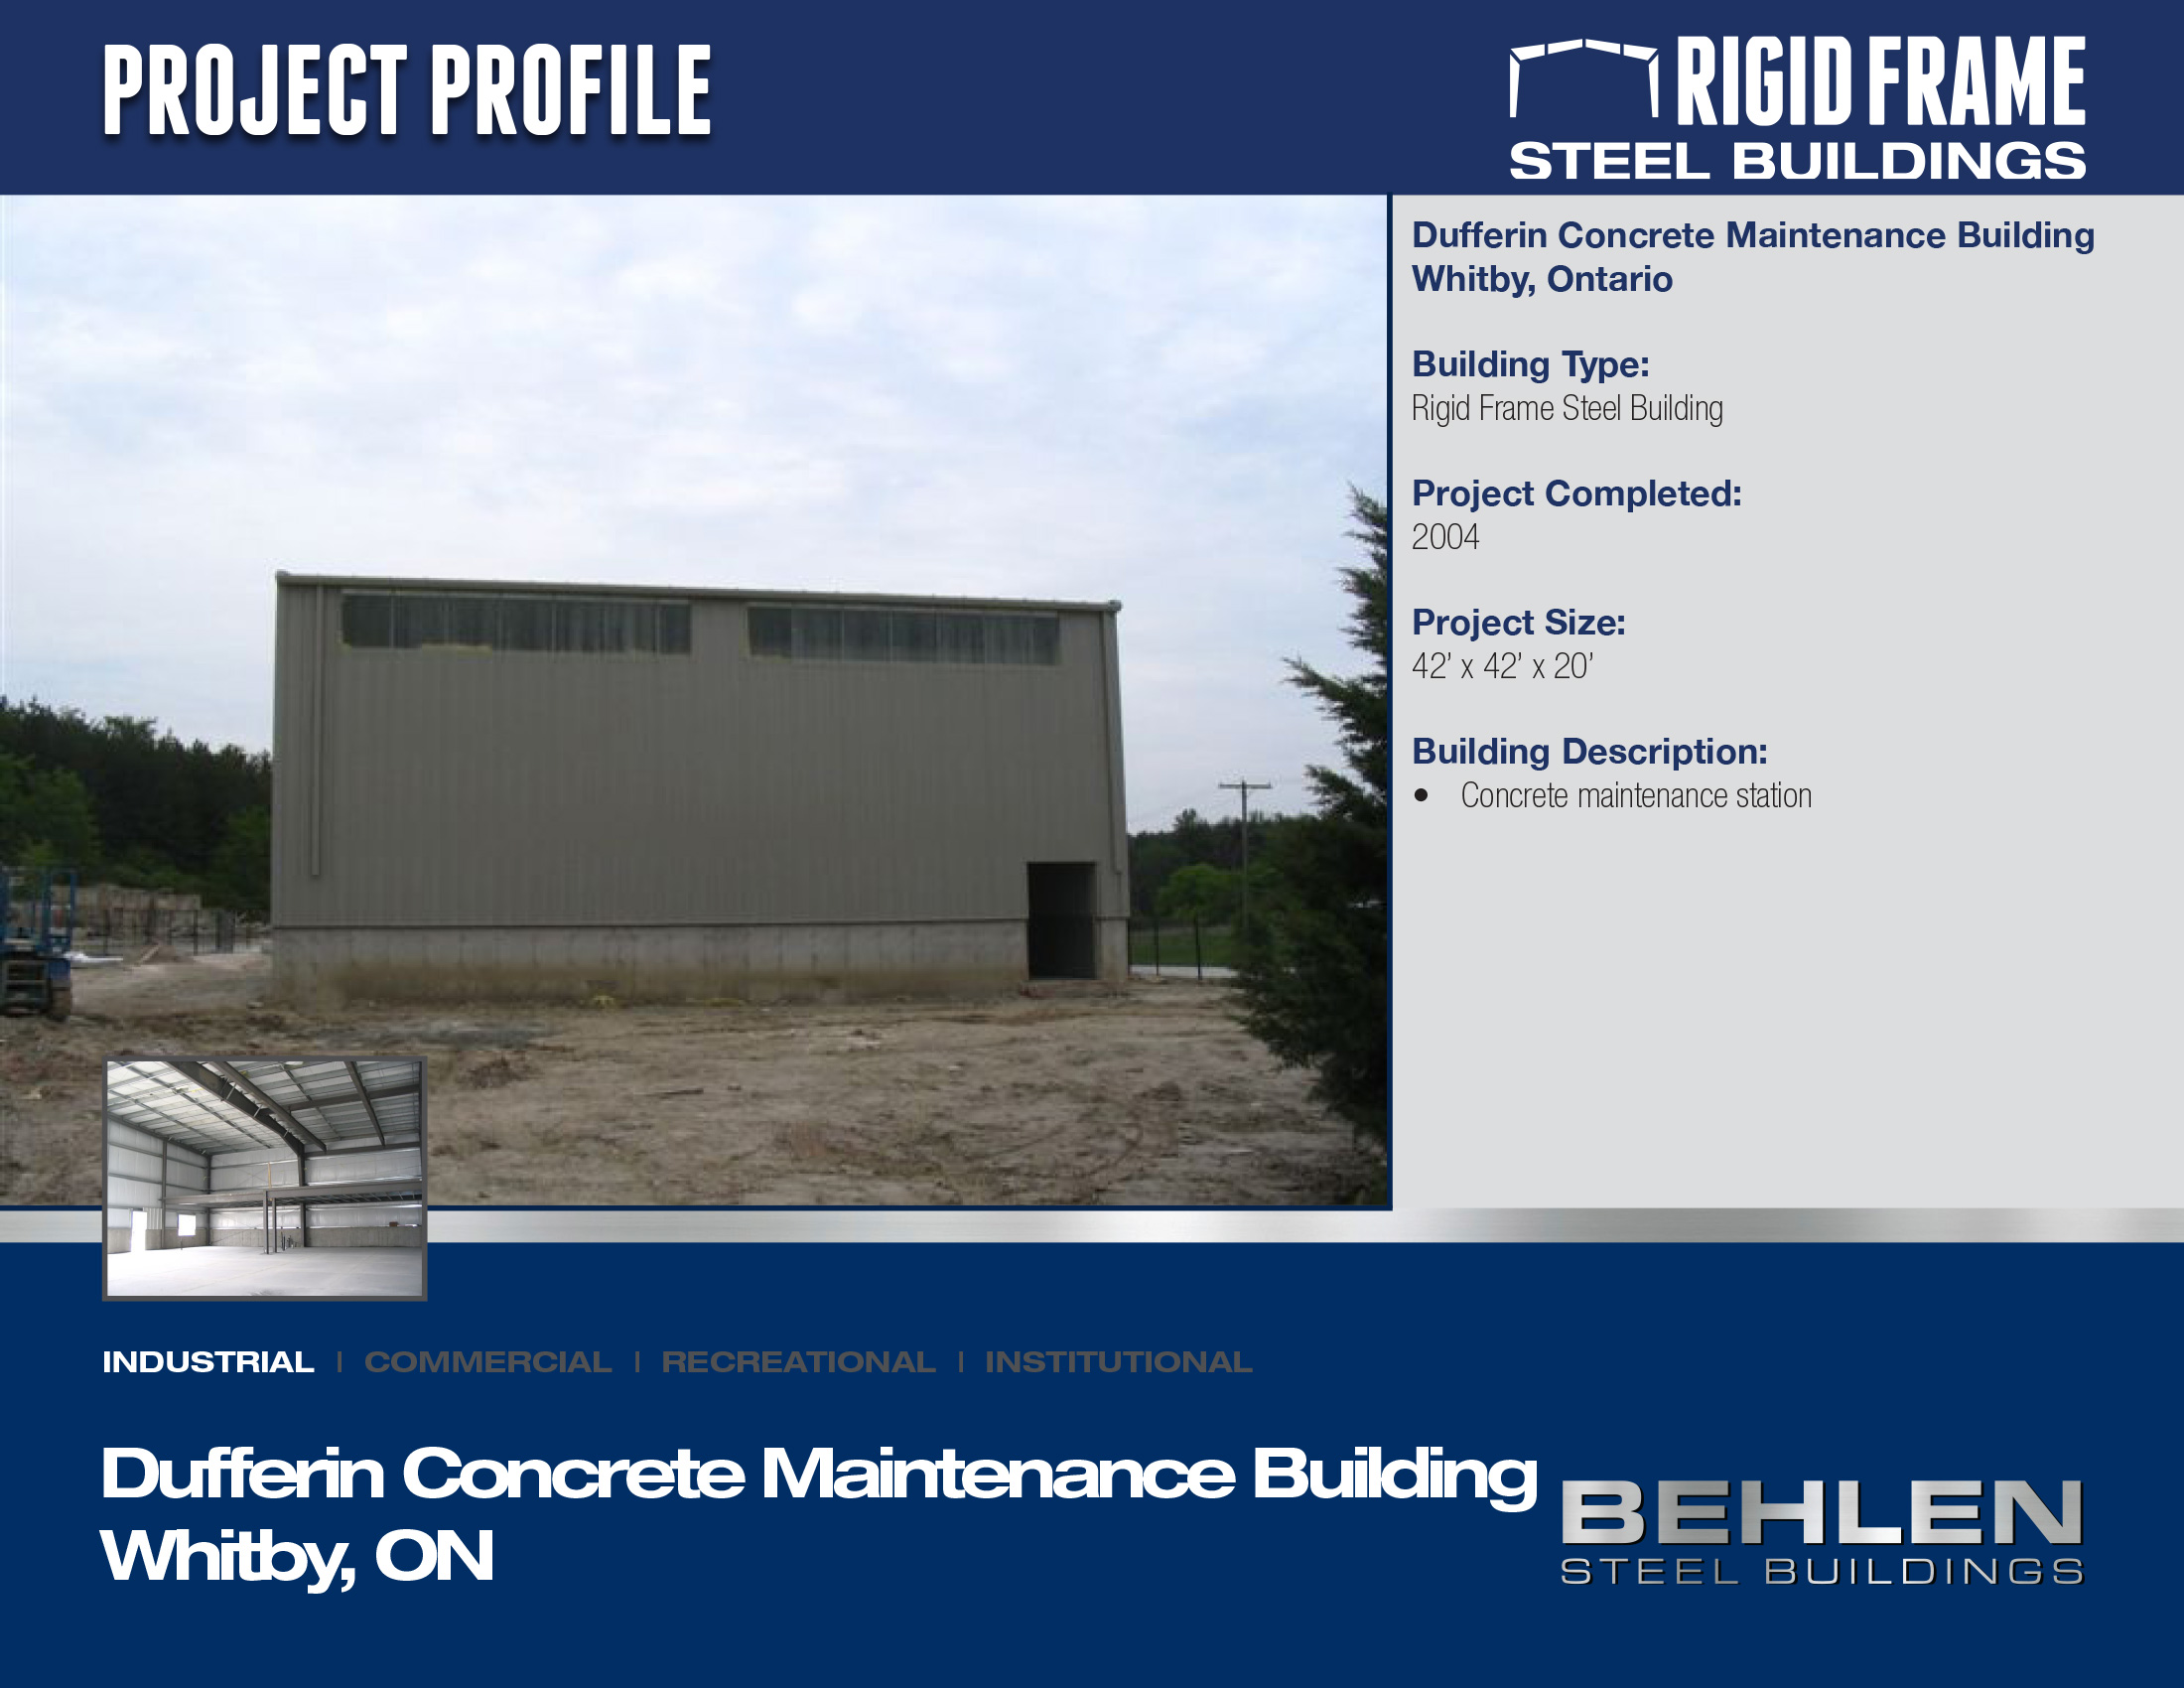 Dufferin Concrete Maintenance Building